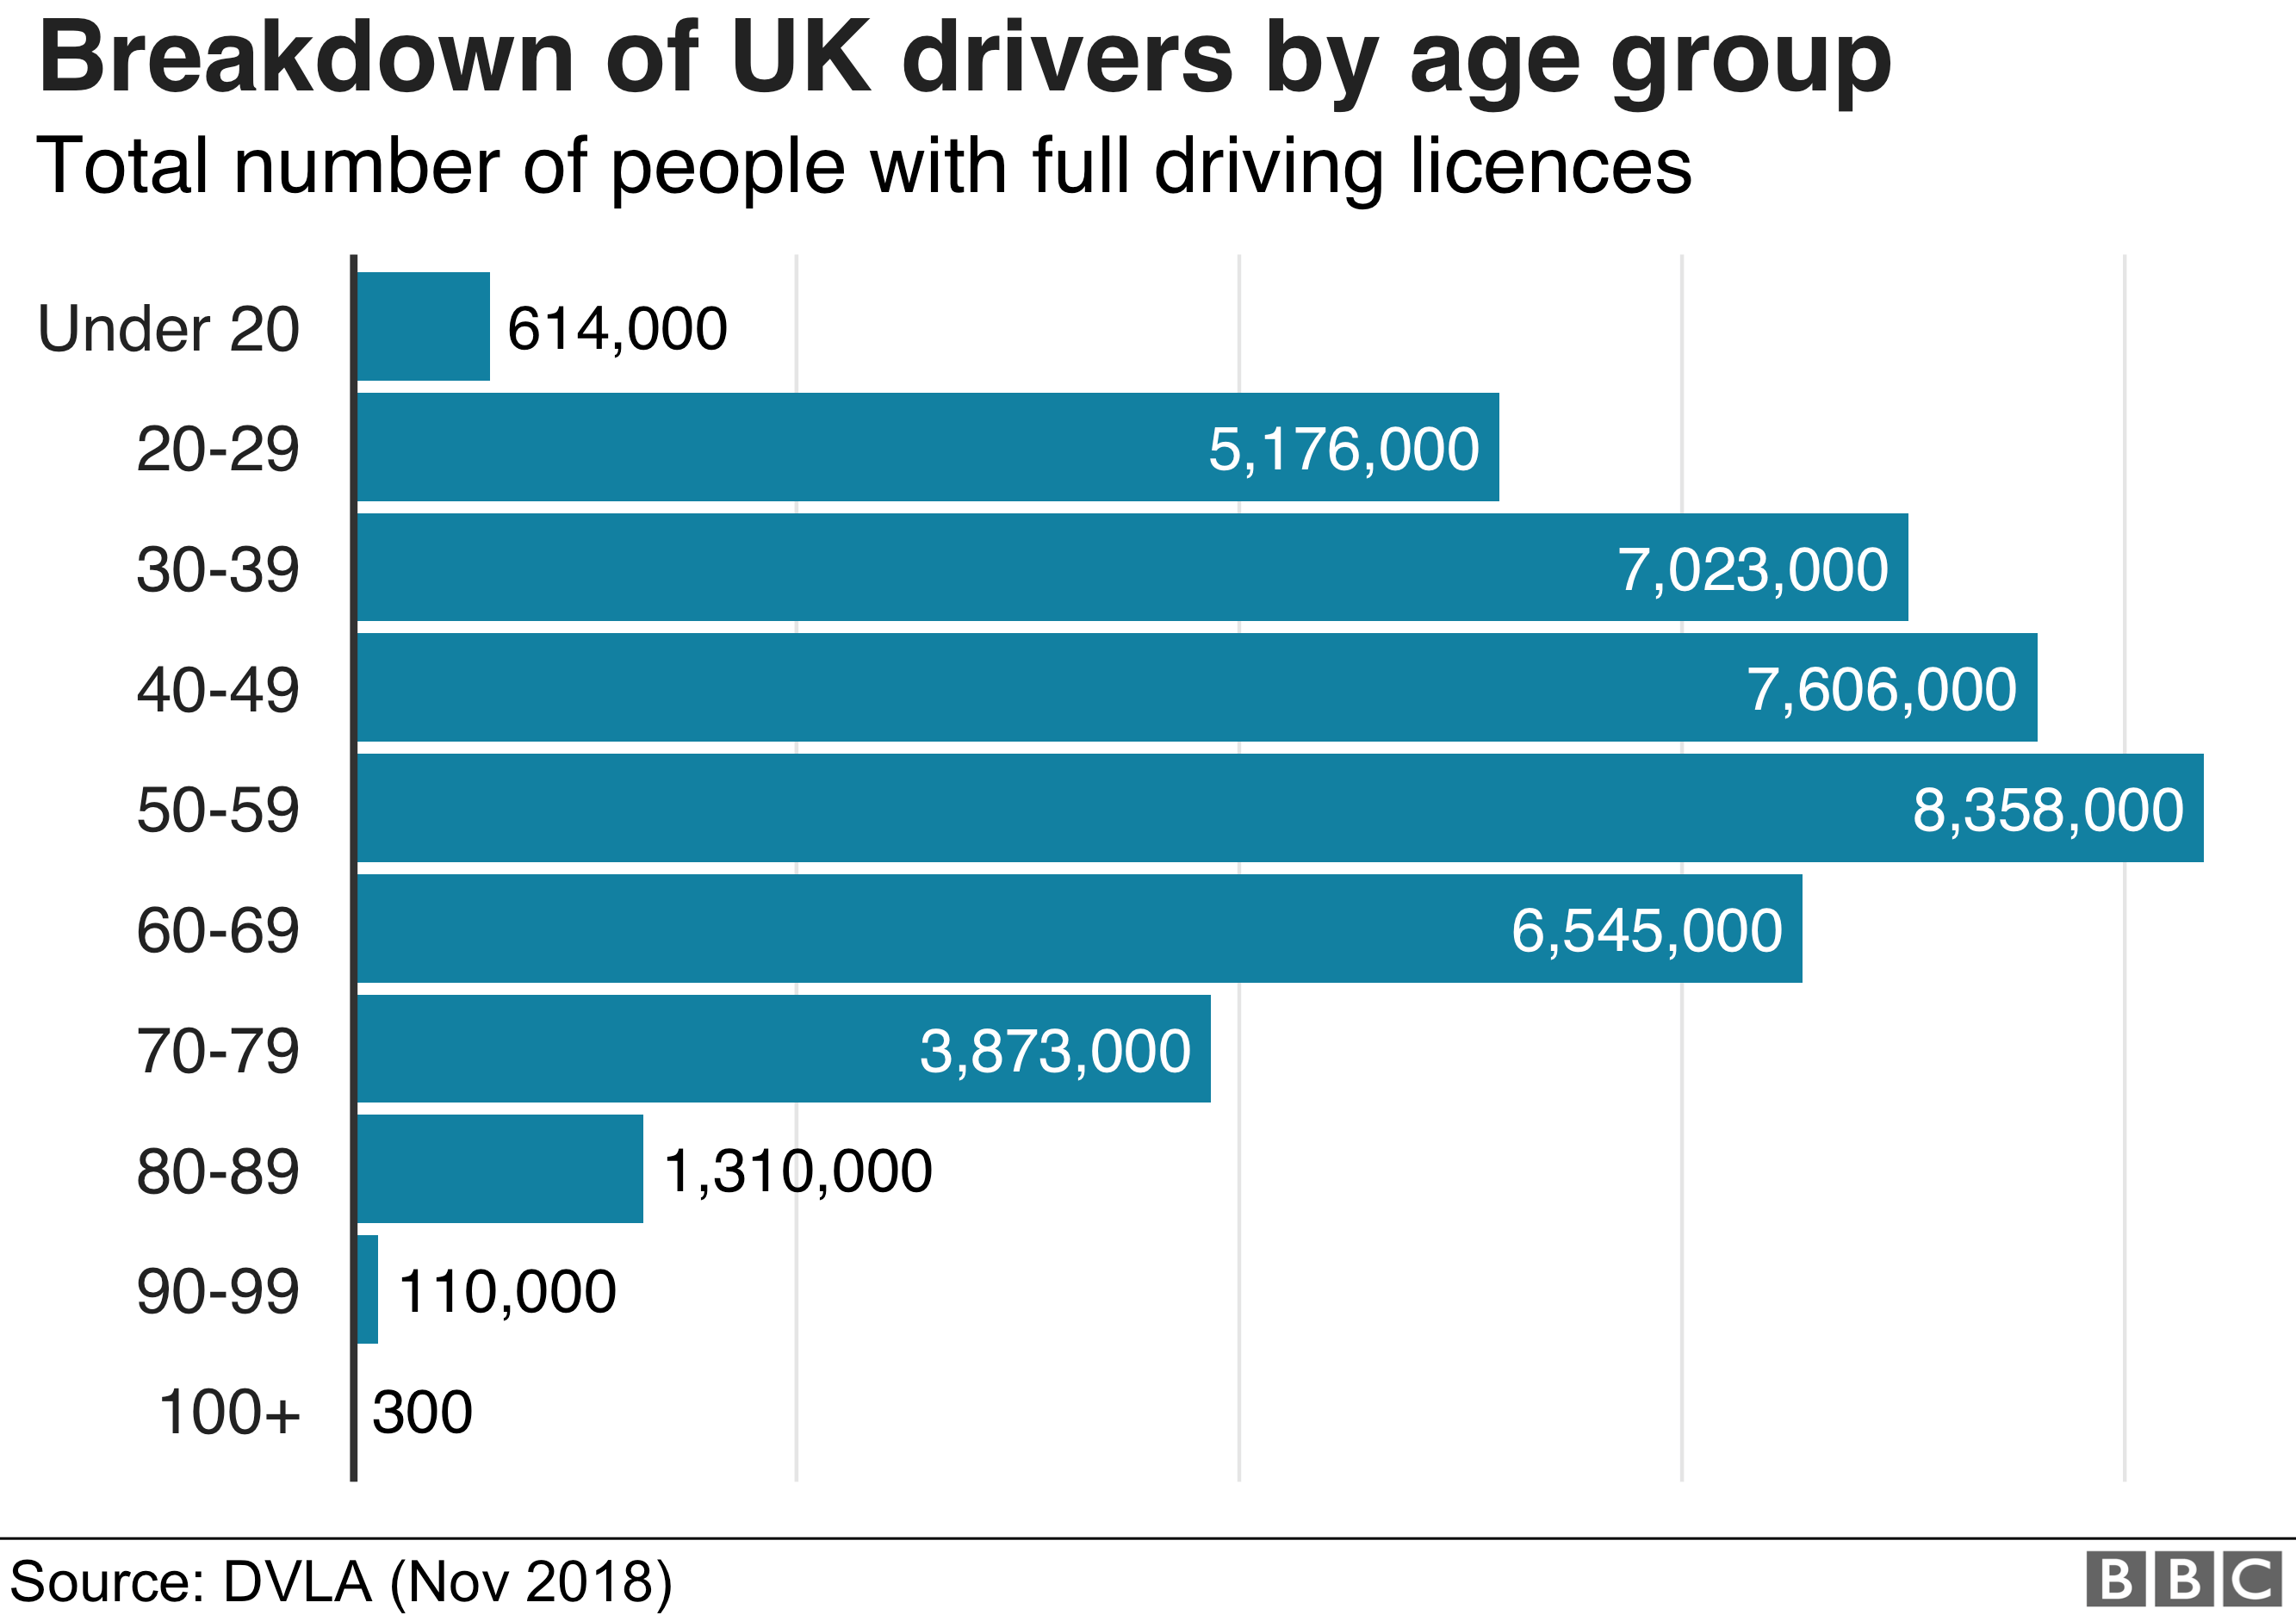 Graphic showing breakdown of UK drivers by age group